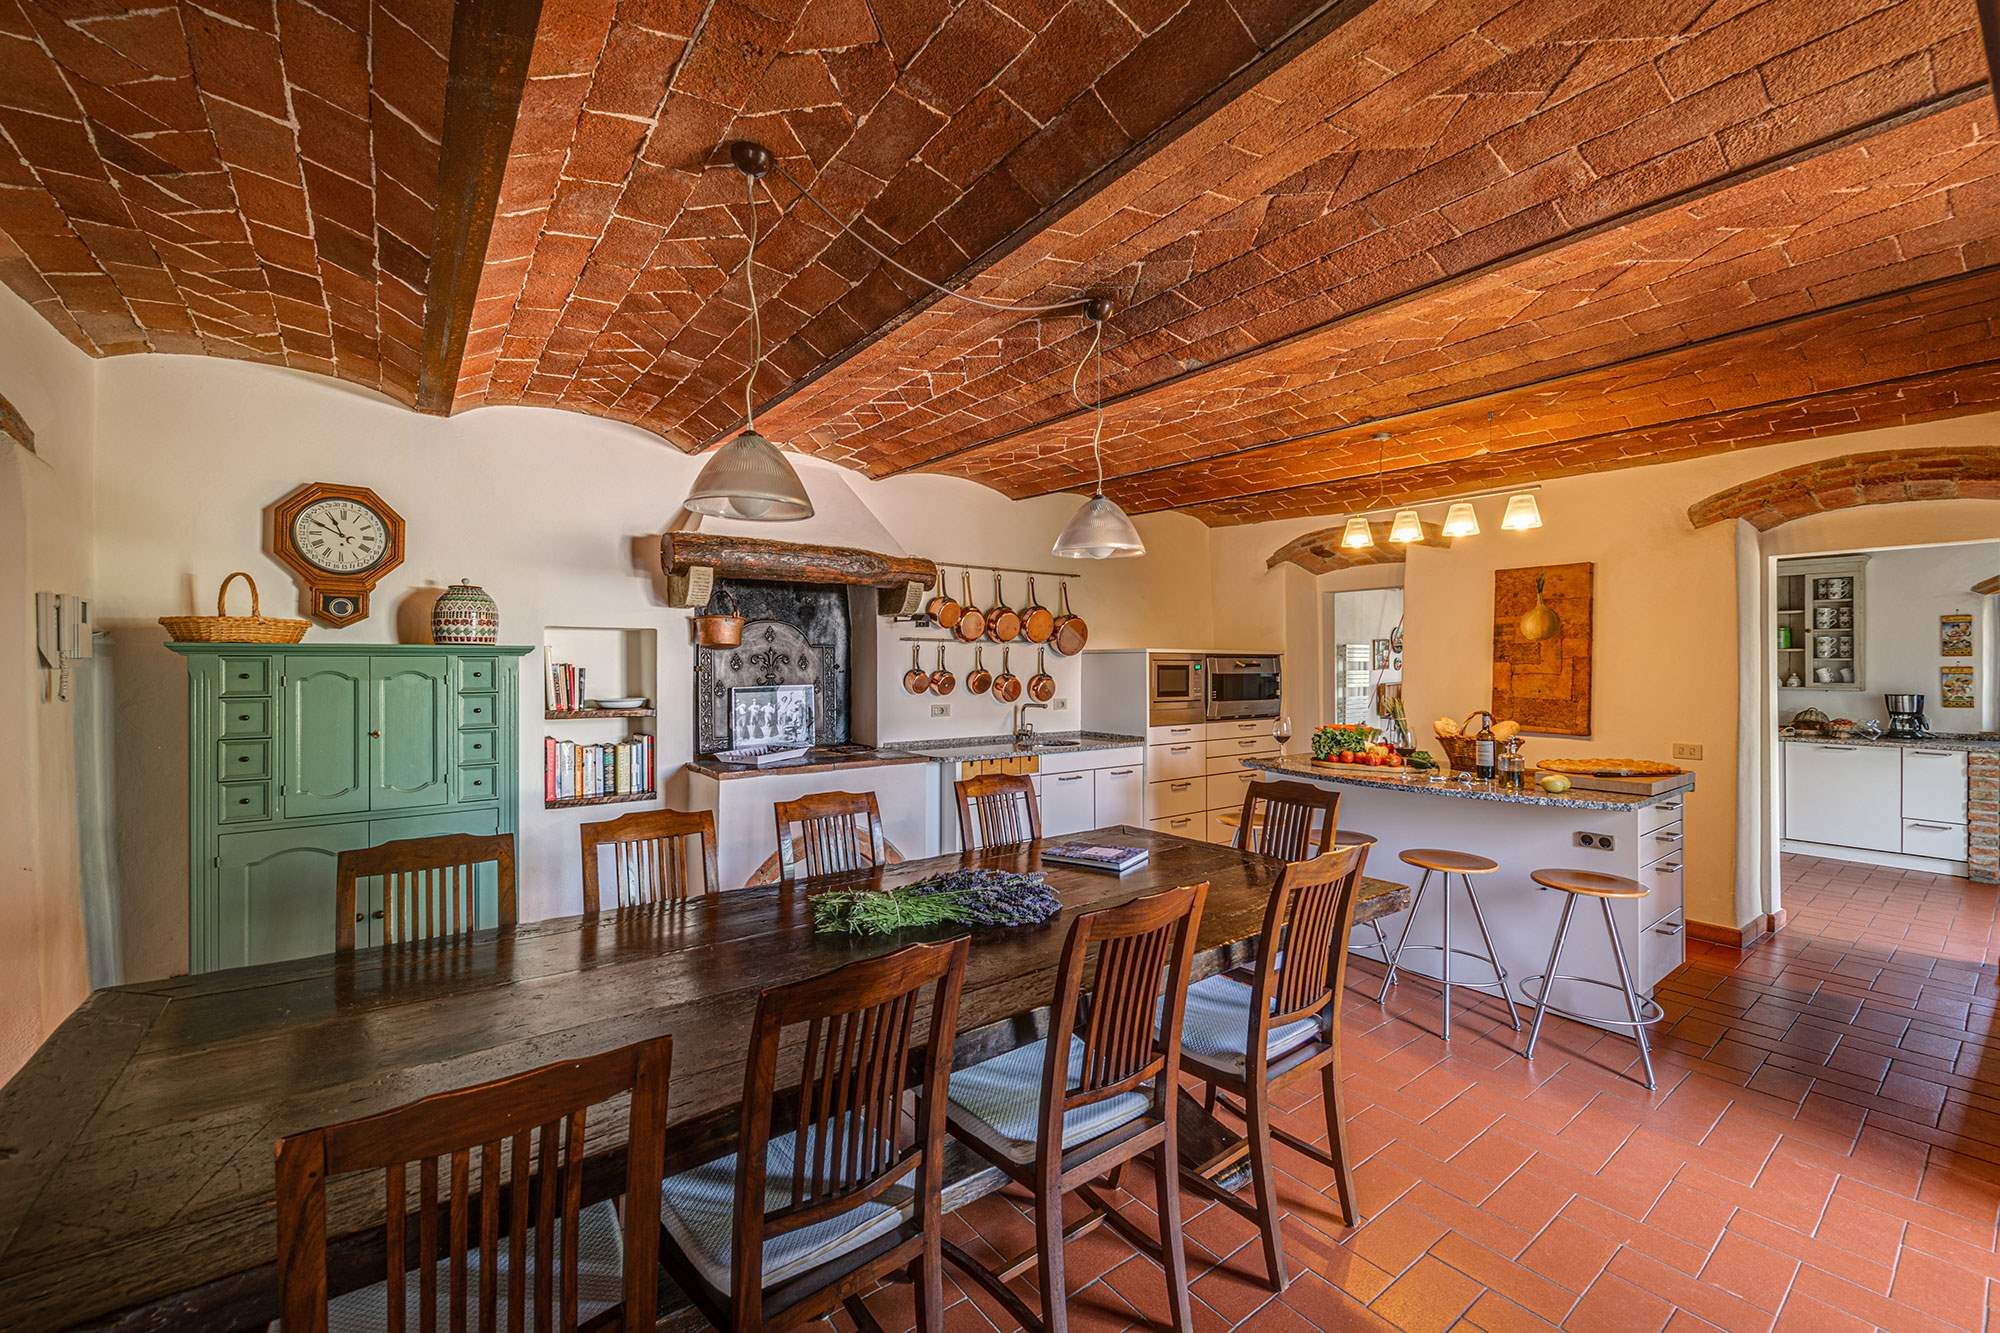 Villa Claudia, 5 Bedroom rate, 5 bedroom villa in Chianti & Countryside, Tuscany Photo #8